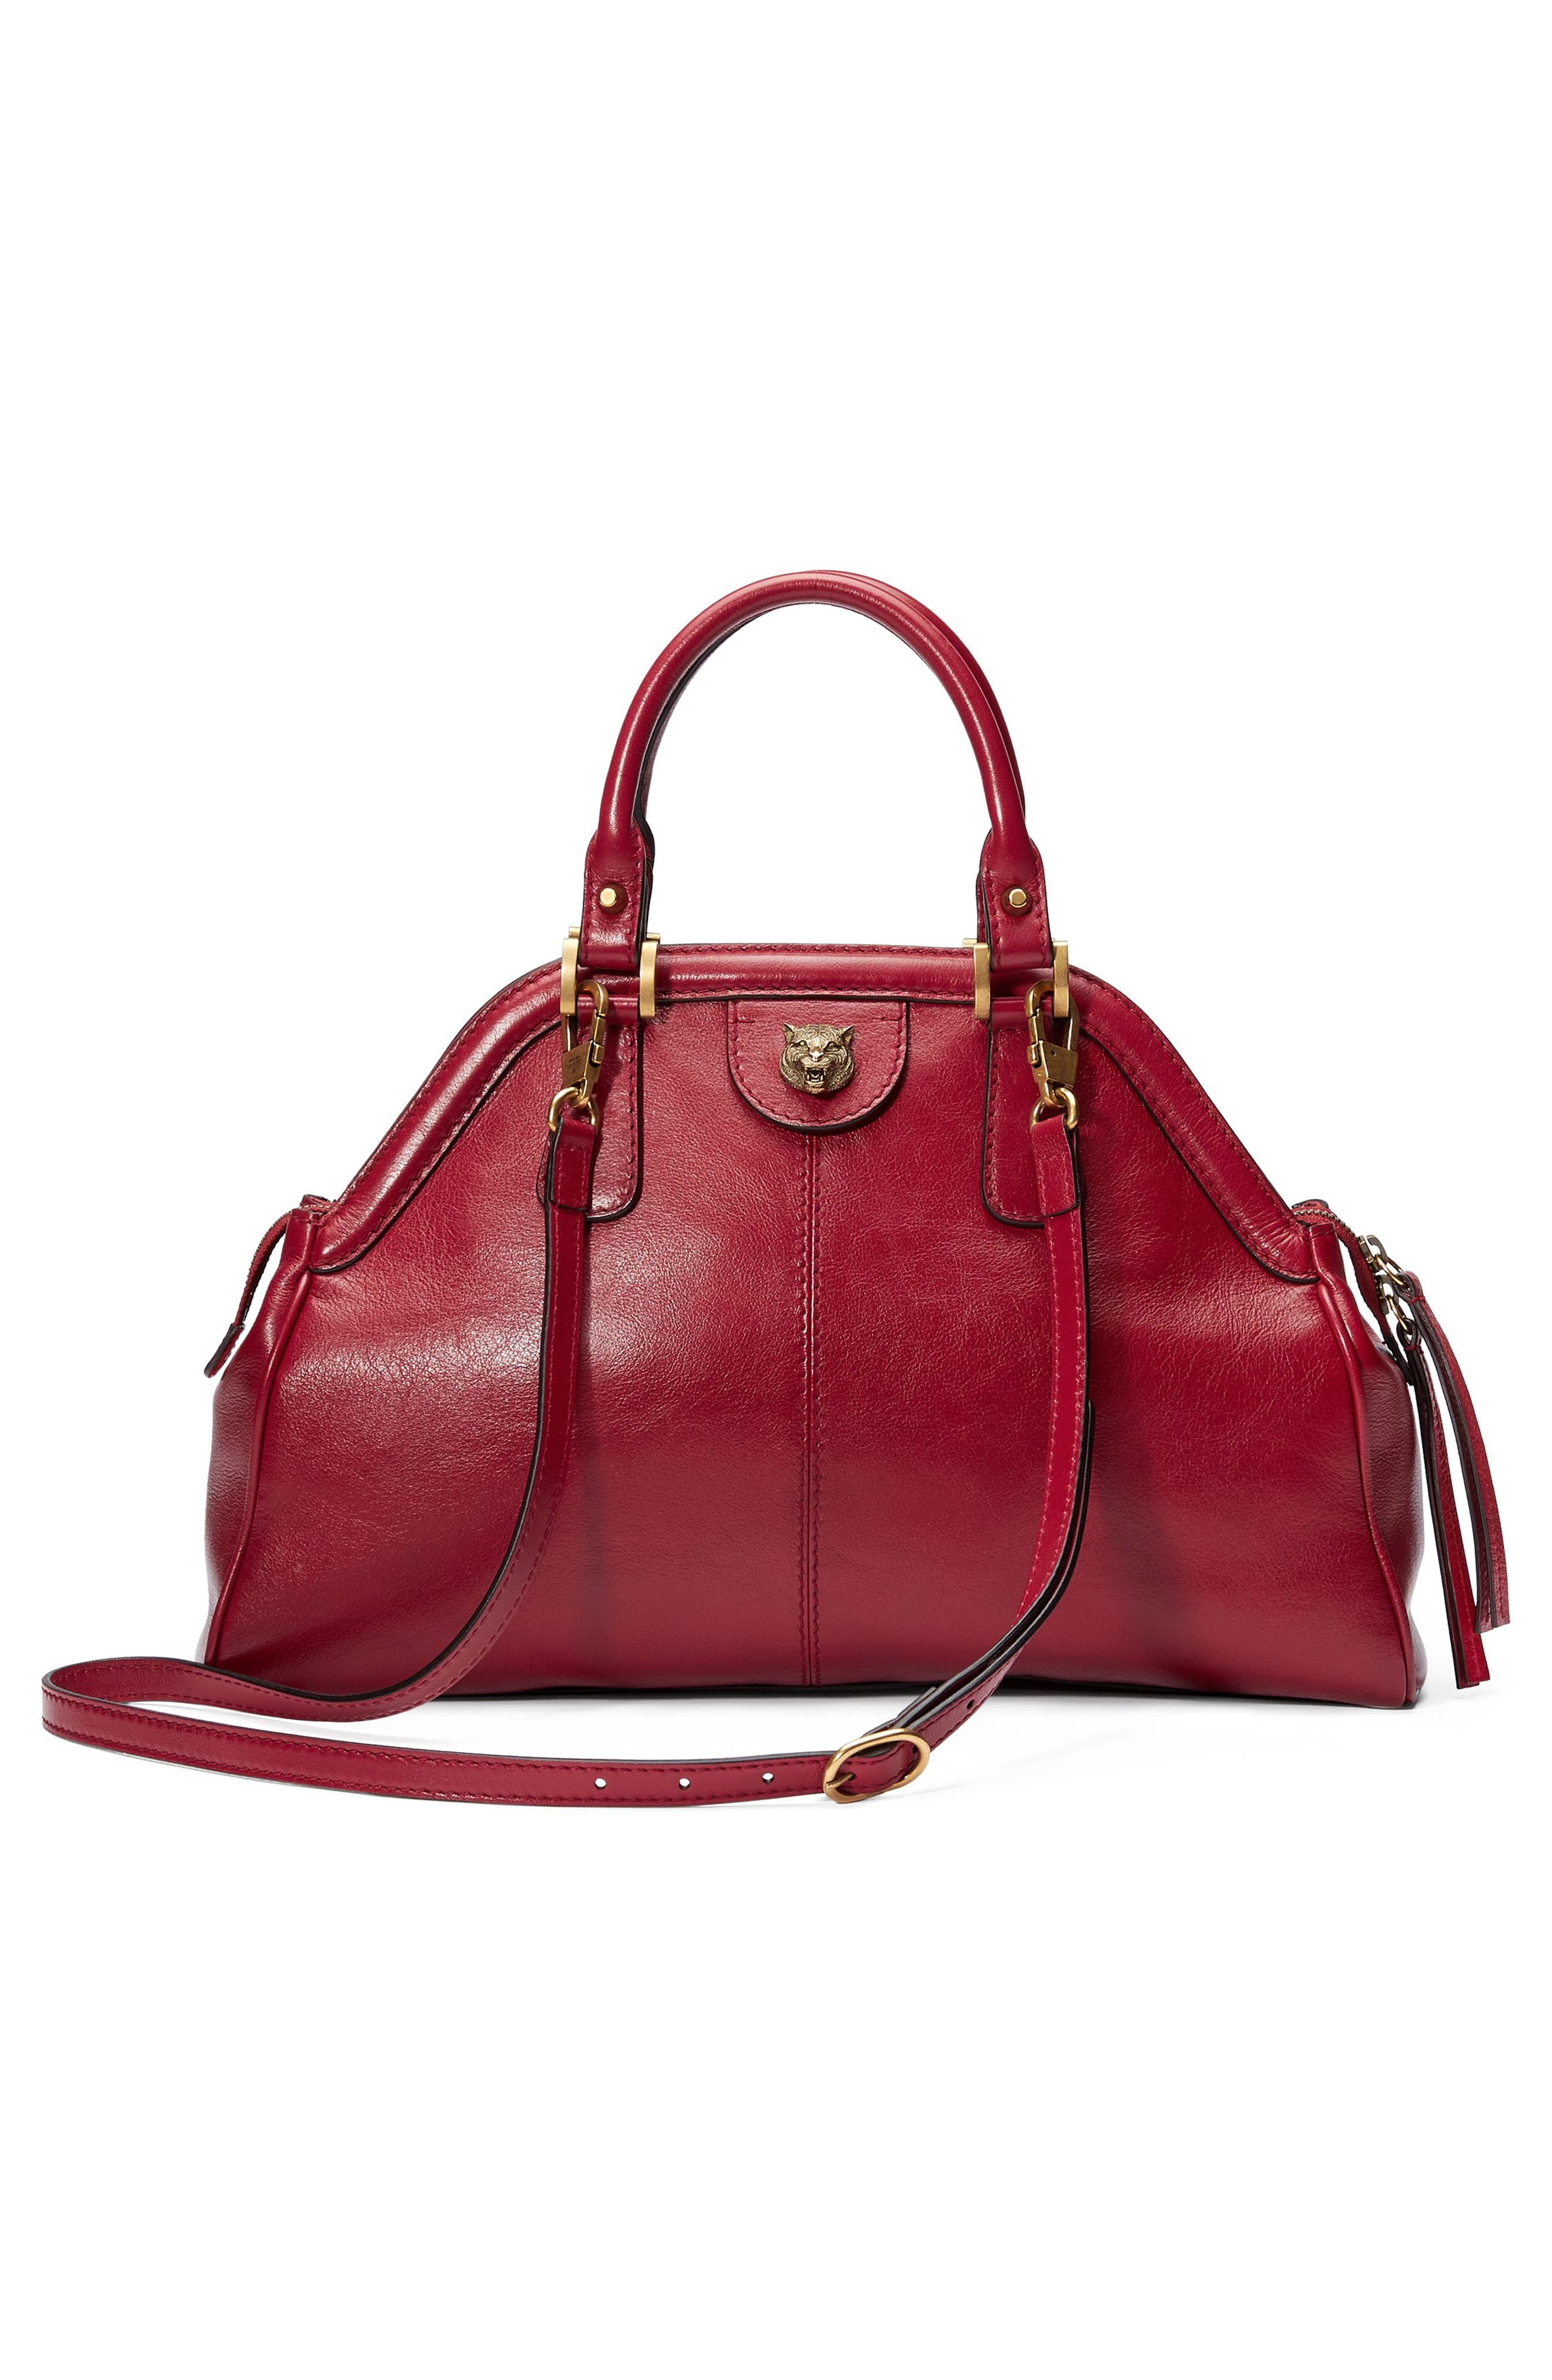 Medium RE(BELLE) Leather Satchel,                             Alternate thumbnail 2, color,                             Romantic Cerise